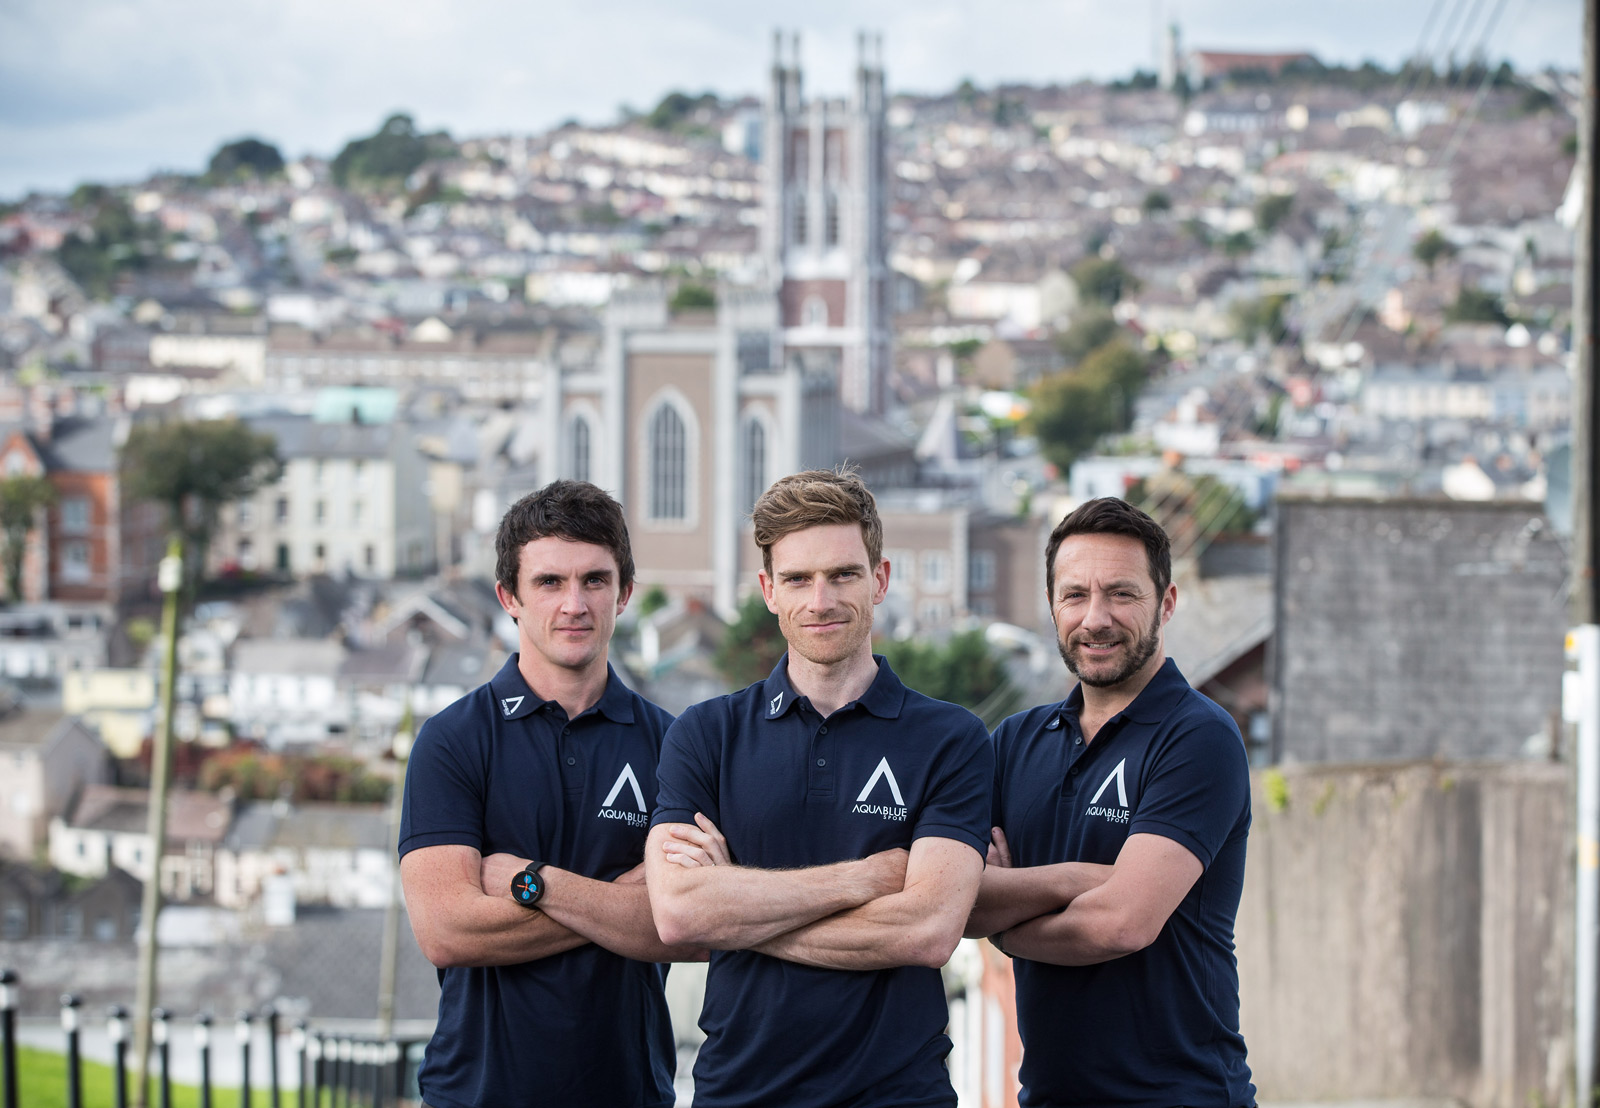 Former Olympic cyclist and World Track Champion Martyn Irvine is pictured alongside Director of Athletic Performance Stephen Barrett  and Sporting Director Tim Barry at the launch of Team Aqua Blue Sport, Ireland's first UCI Professional Continental cycling team.